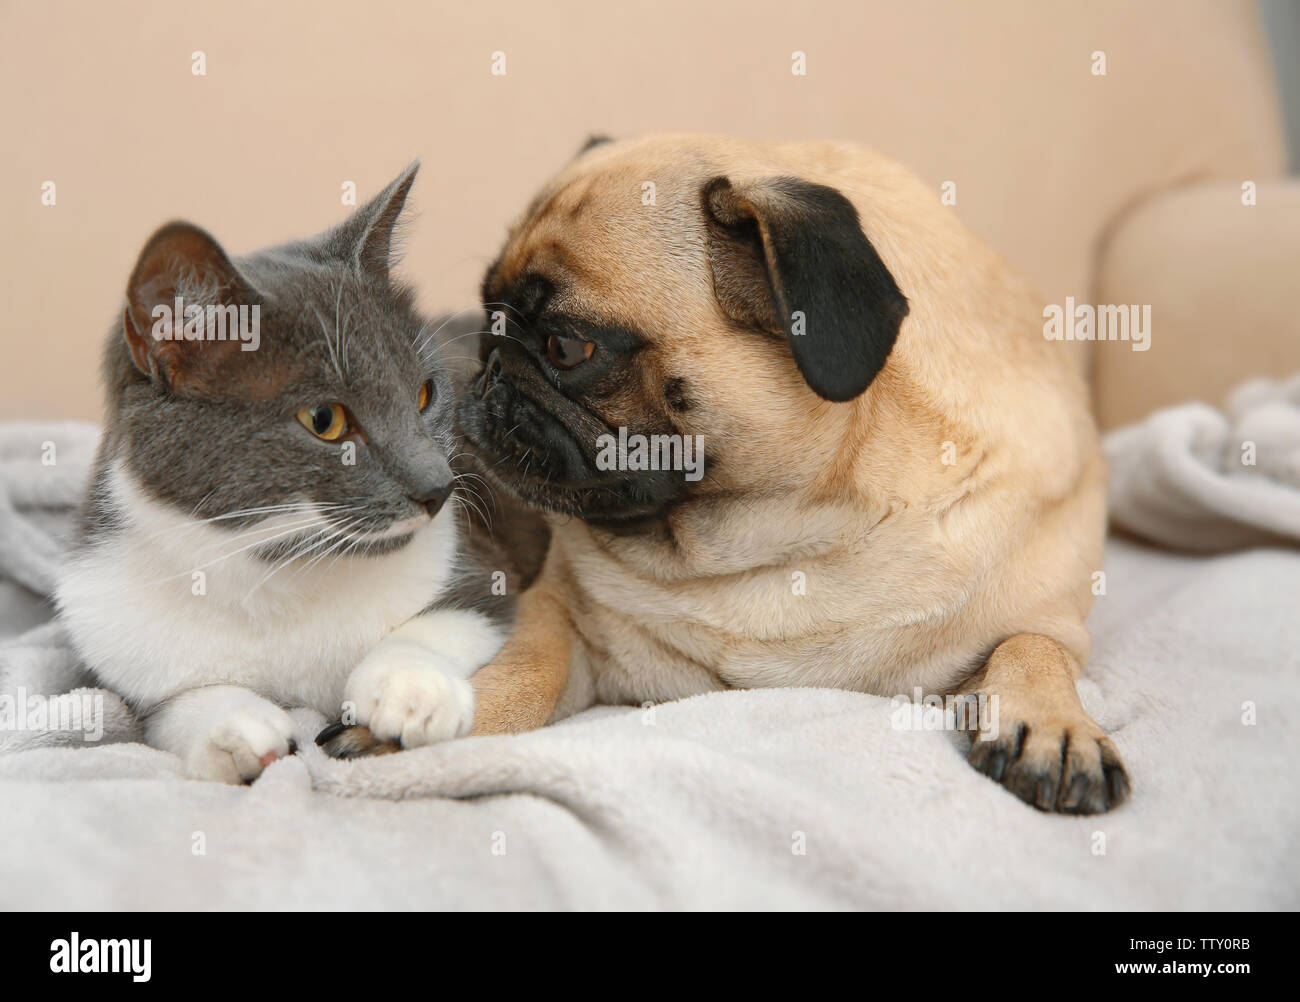 Adorable Pug And Cute Cat Lying Together On Sofa Stock Photo Alamy